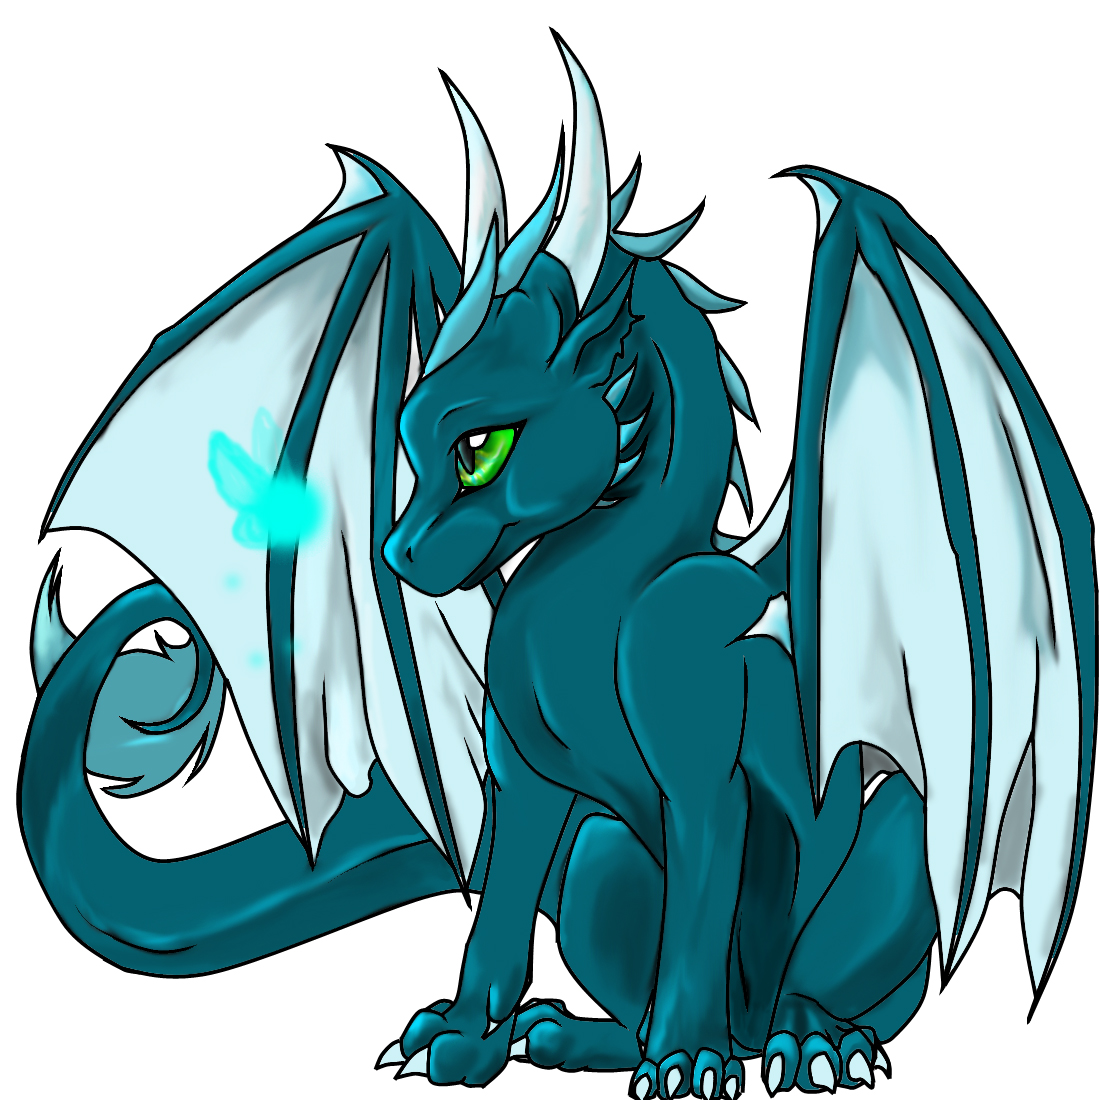 Randome clipart baby dragon #3